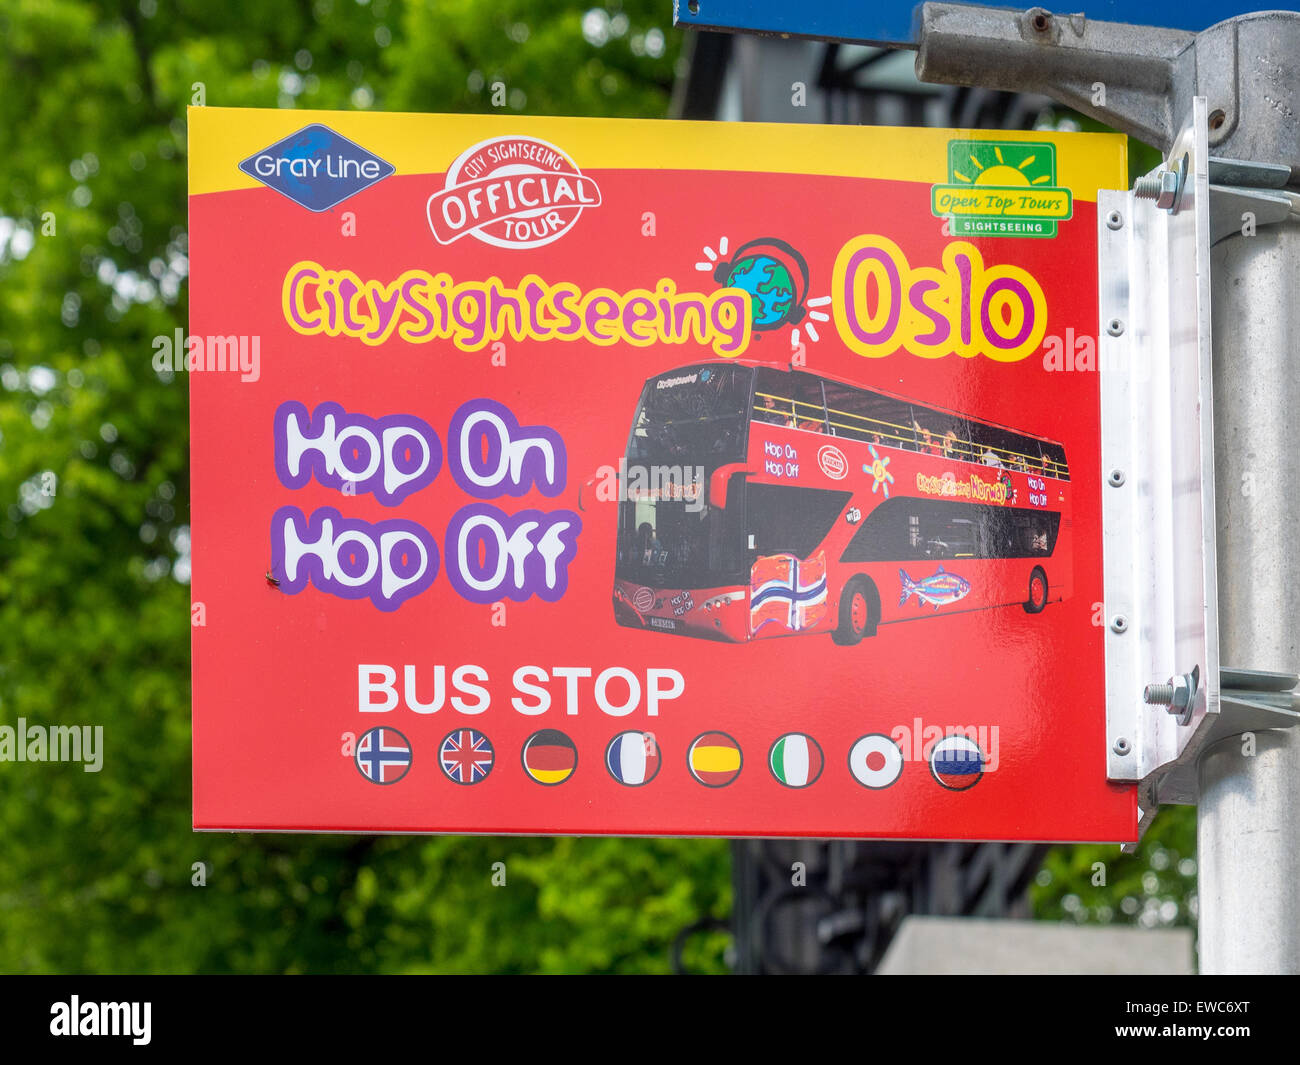 The sign indicating that this is a hop on-hop off stop for the City Sightseeing bus in Oslo. - Stock Image